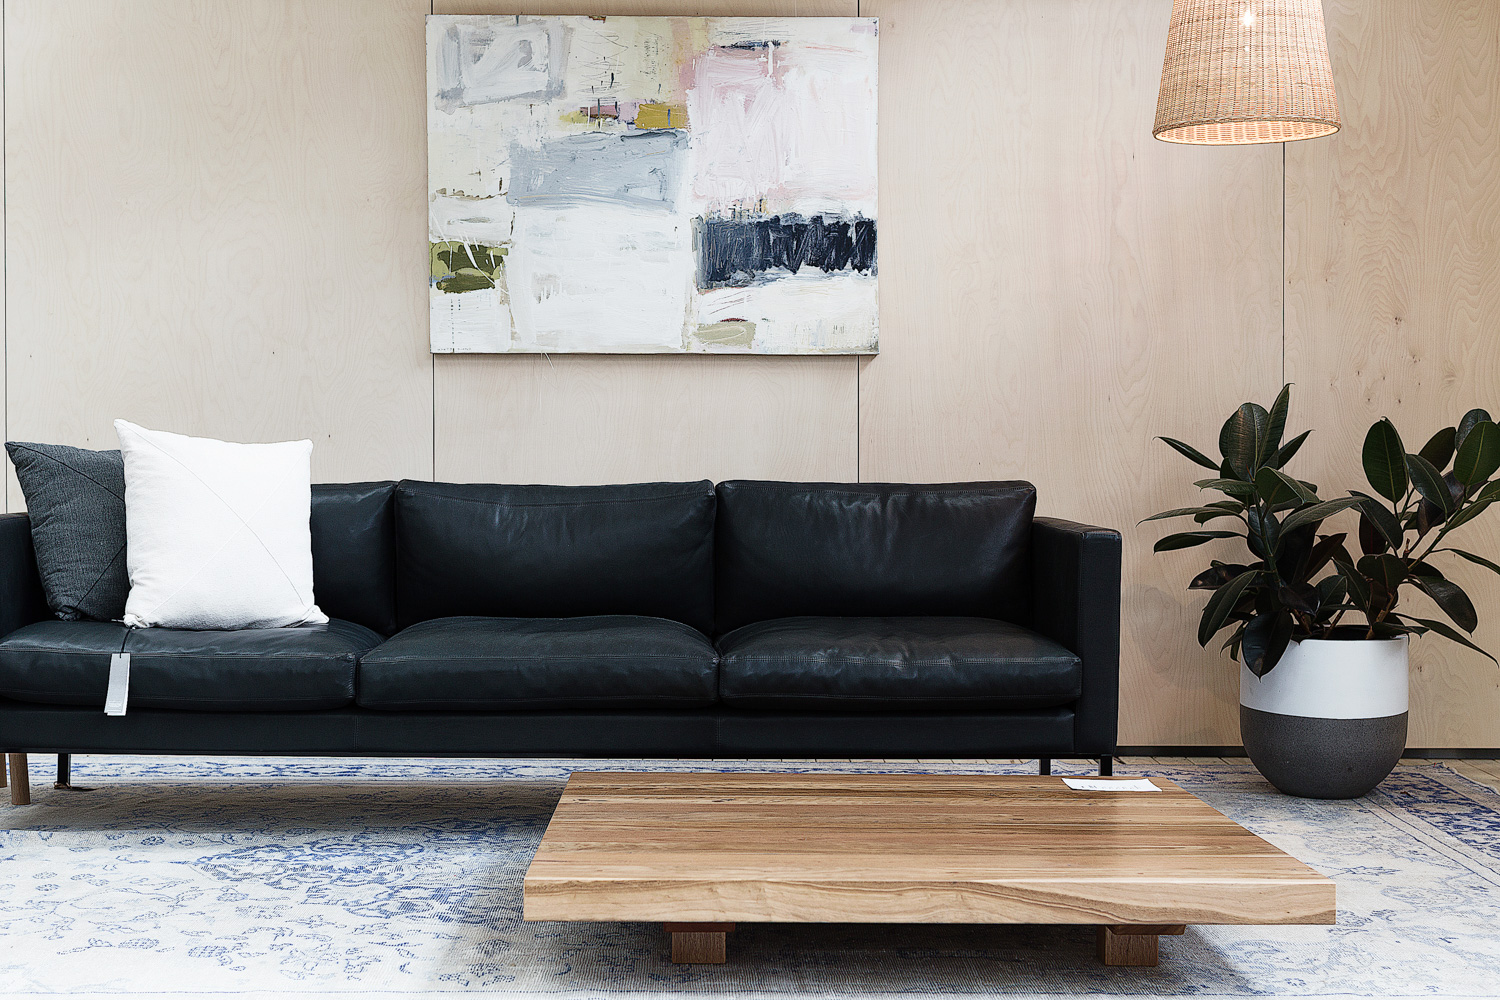 The Classic Sofa and the  Zen Low Table , both designed by Koskela.Photography by  Richard Whitbread .